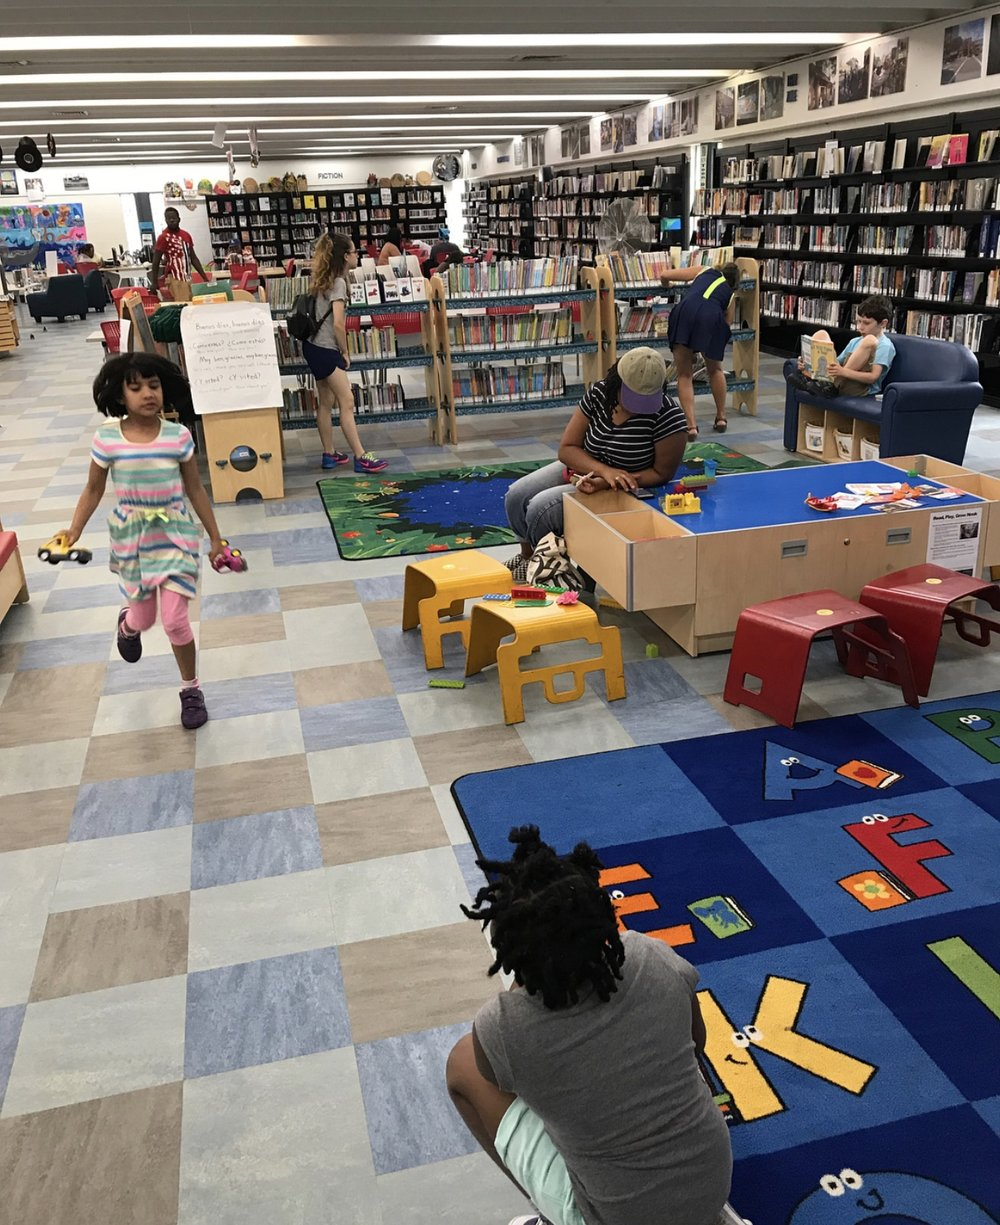 Kids at the library.